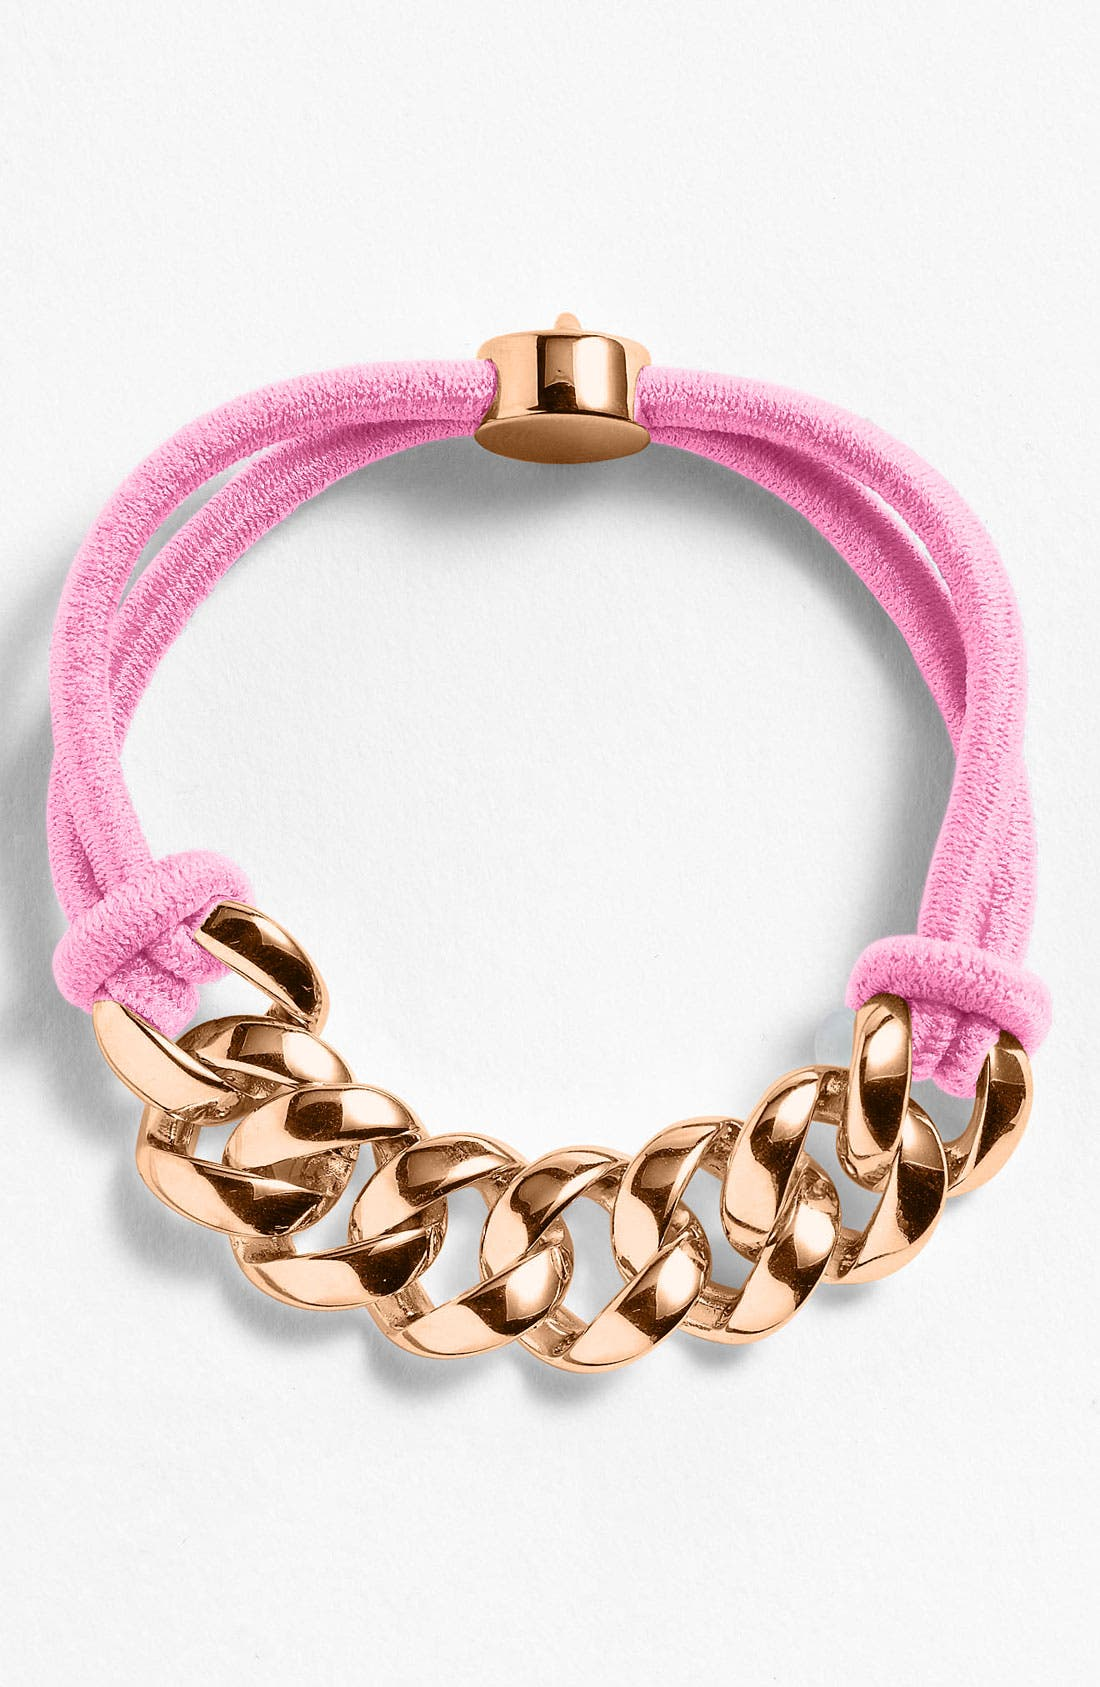 Main Image - MARC BY MARC JACOBS 'Turnlock' Cord Bracelet